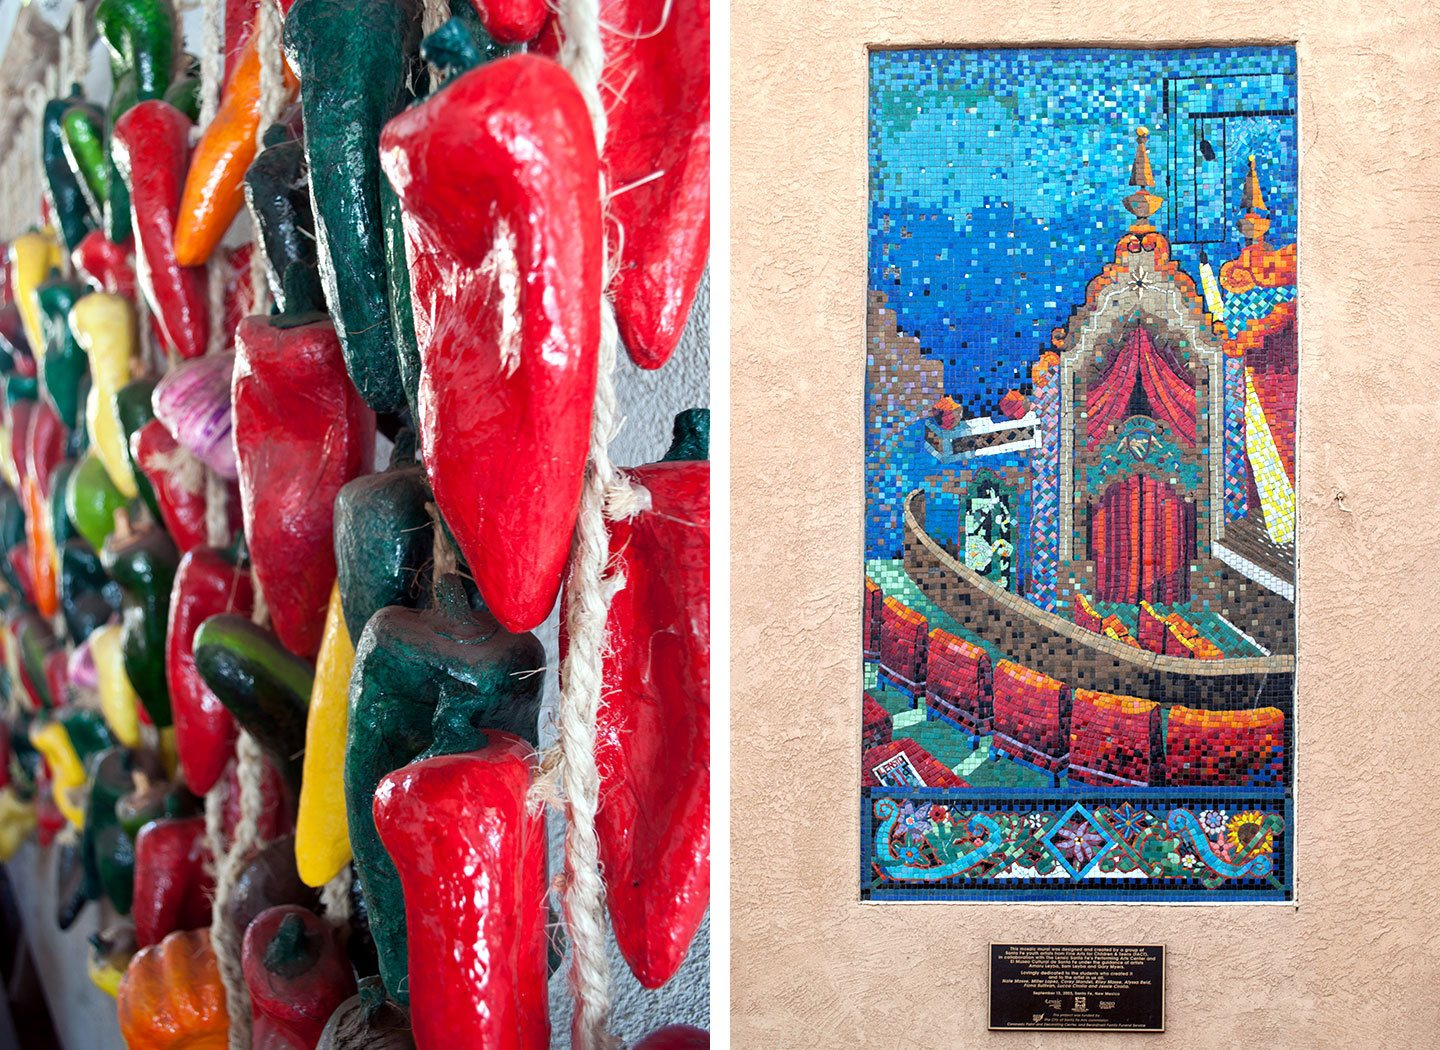 Colourful painted chilies and mosaics in Santa Fe, New Mexico